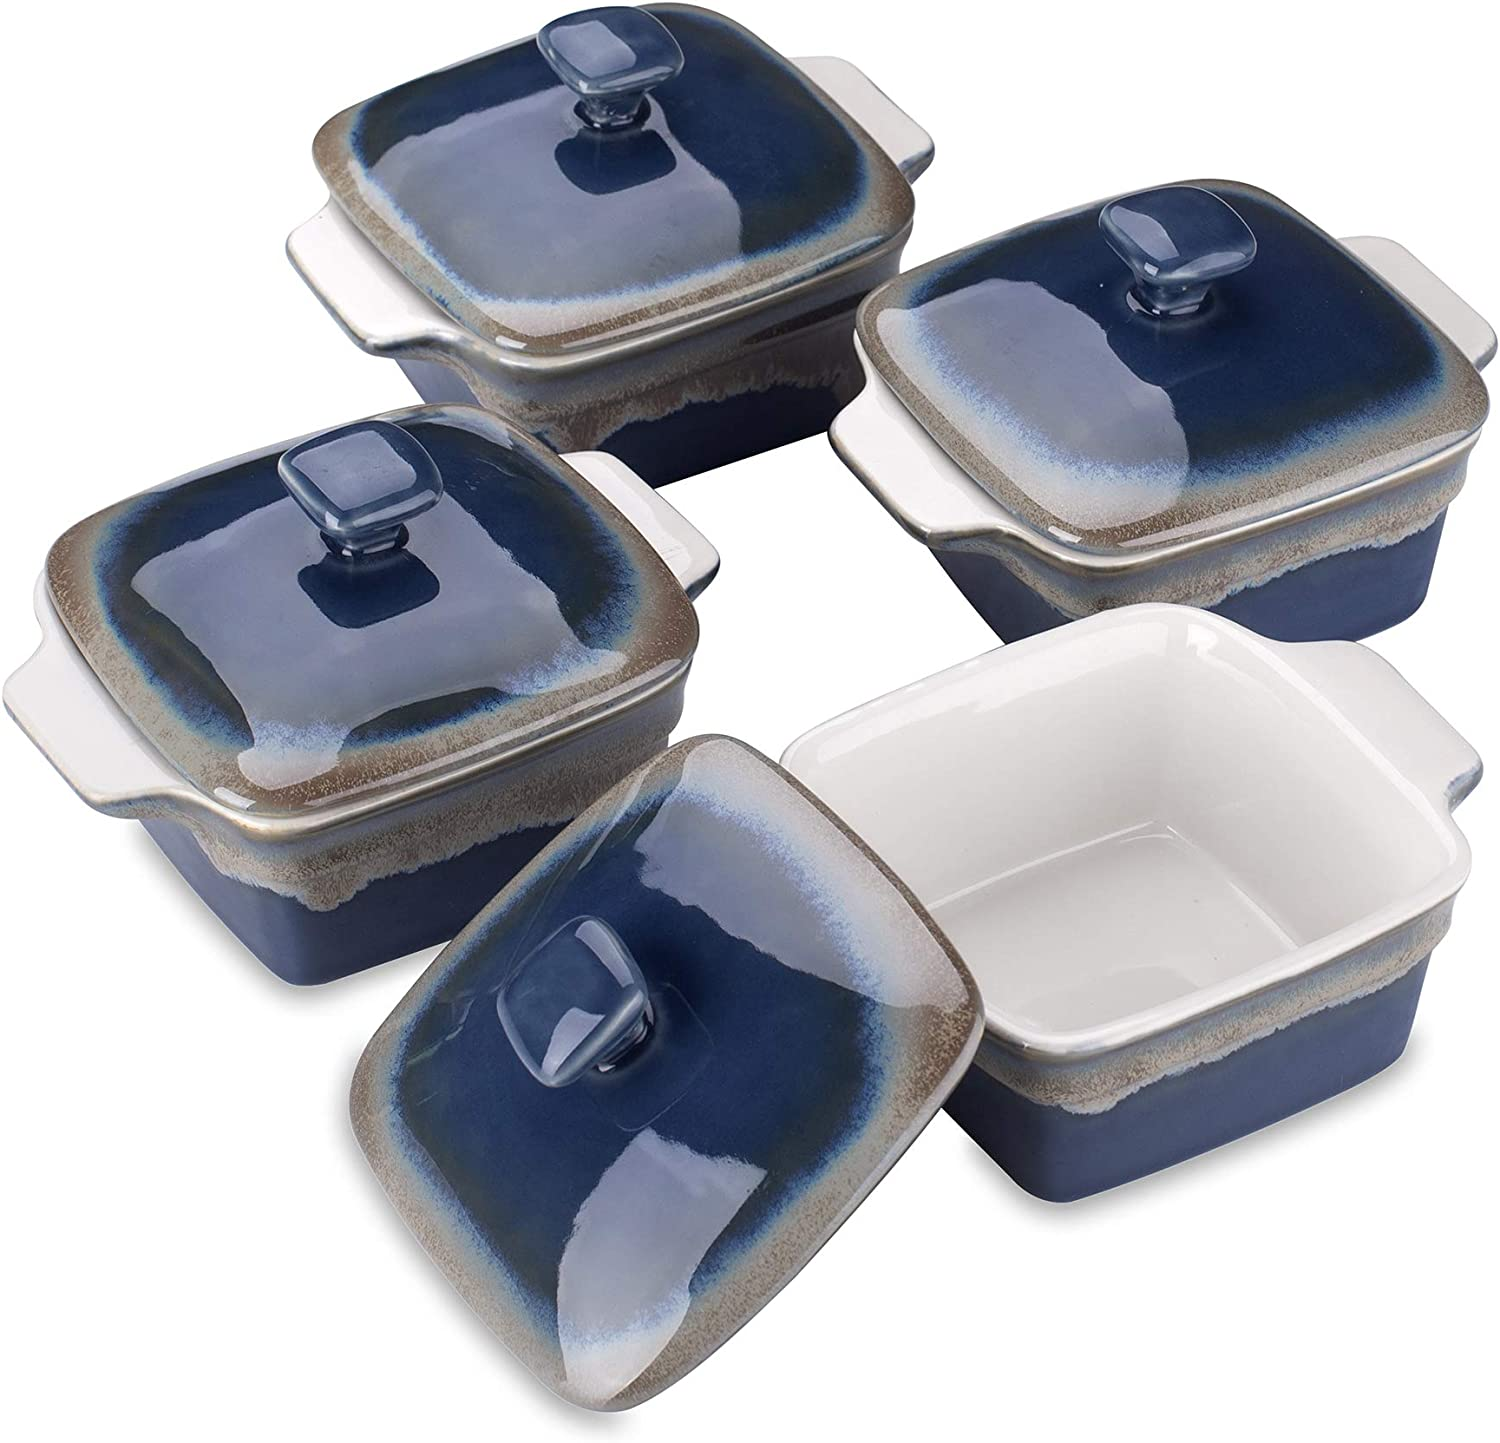 LOVECASA Stoneware Ramekins with Cover for Baking, 9.8 Ounce Souffle Dishes, Covered Square Casserole, Oven Safe Mini Casserole Dish with Lid, Set of 4, Navy and Grey